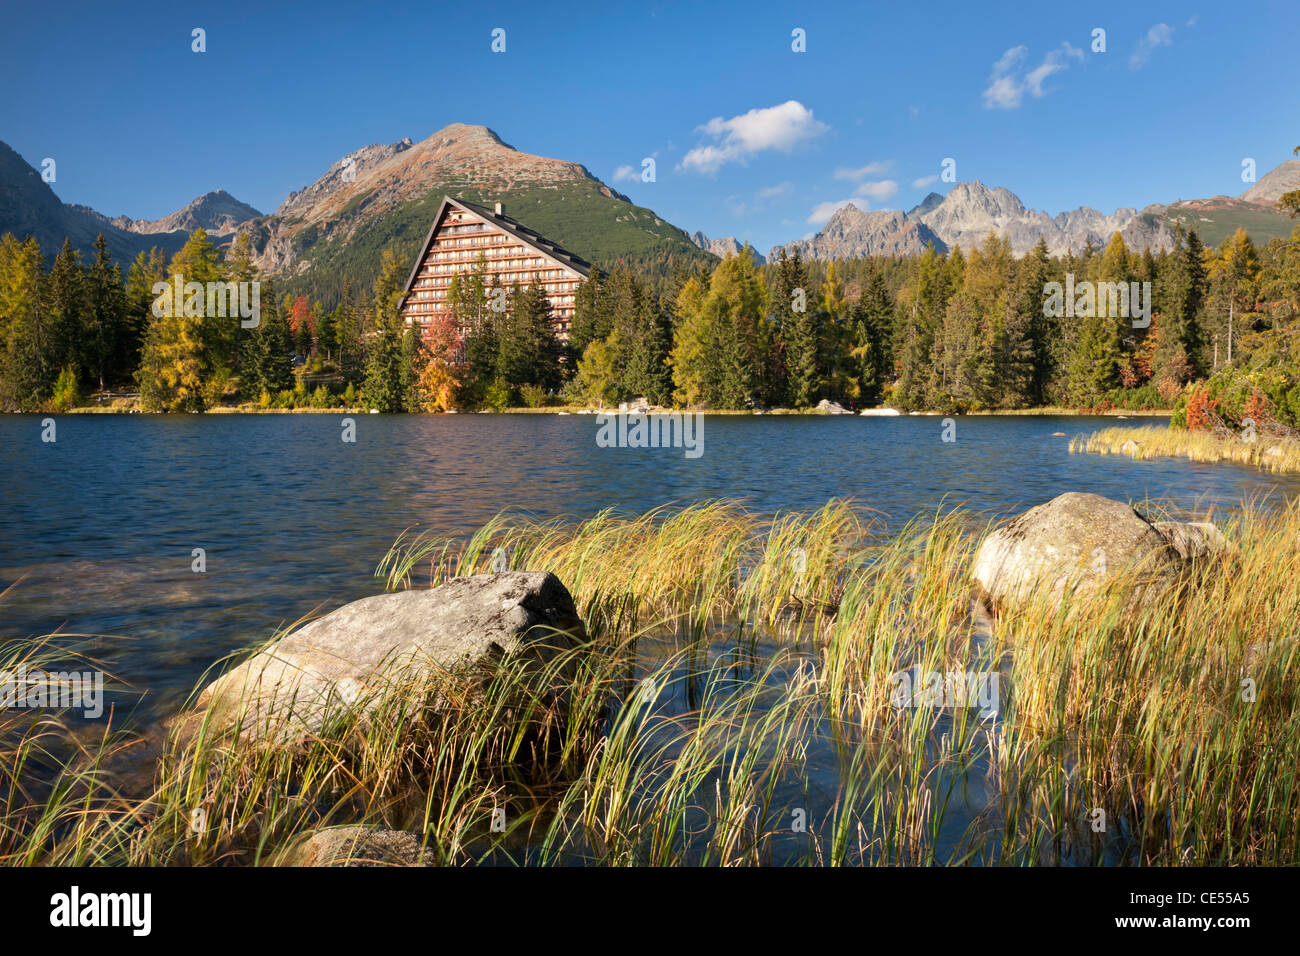 Hotel on Strbske Pleso Lake in the High Tatras, Slovakia, Europe. Autumn (October) 2011. - Stock Image